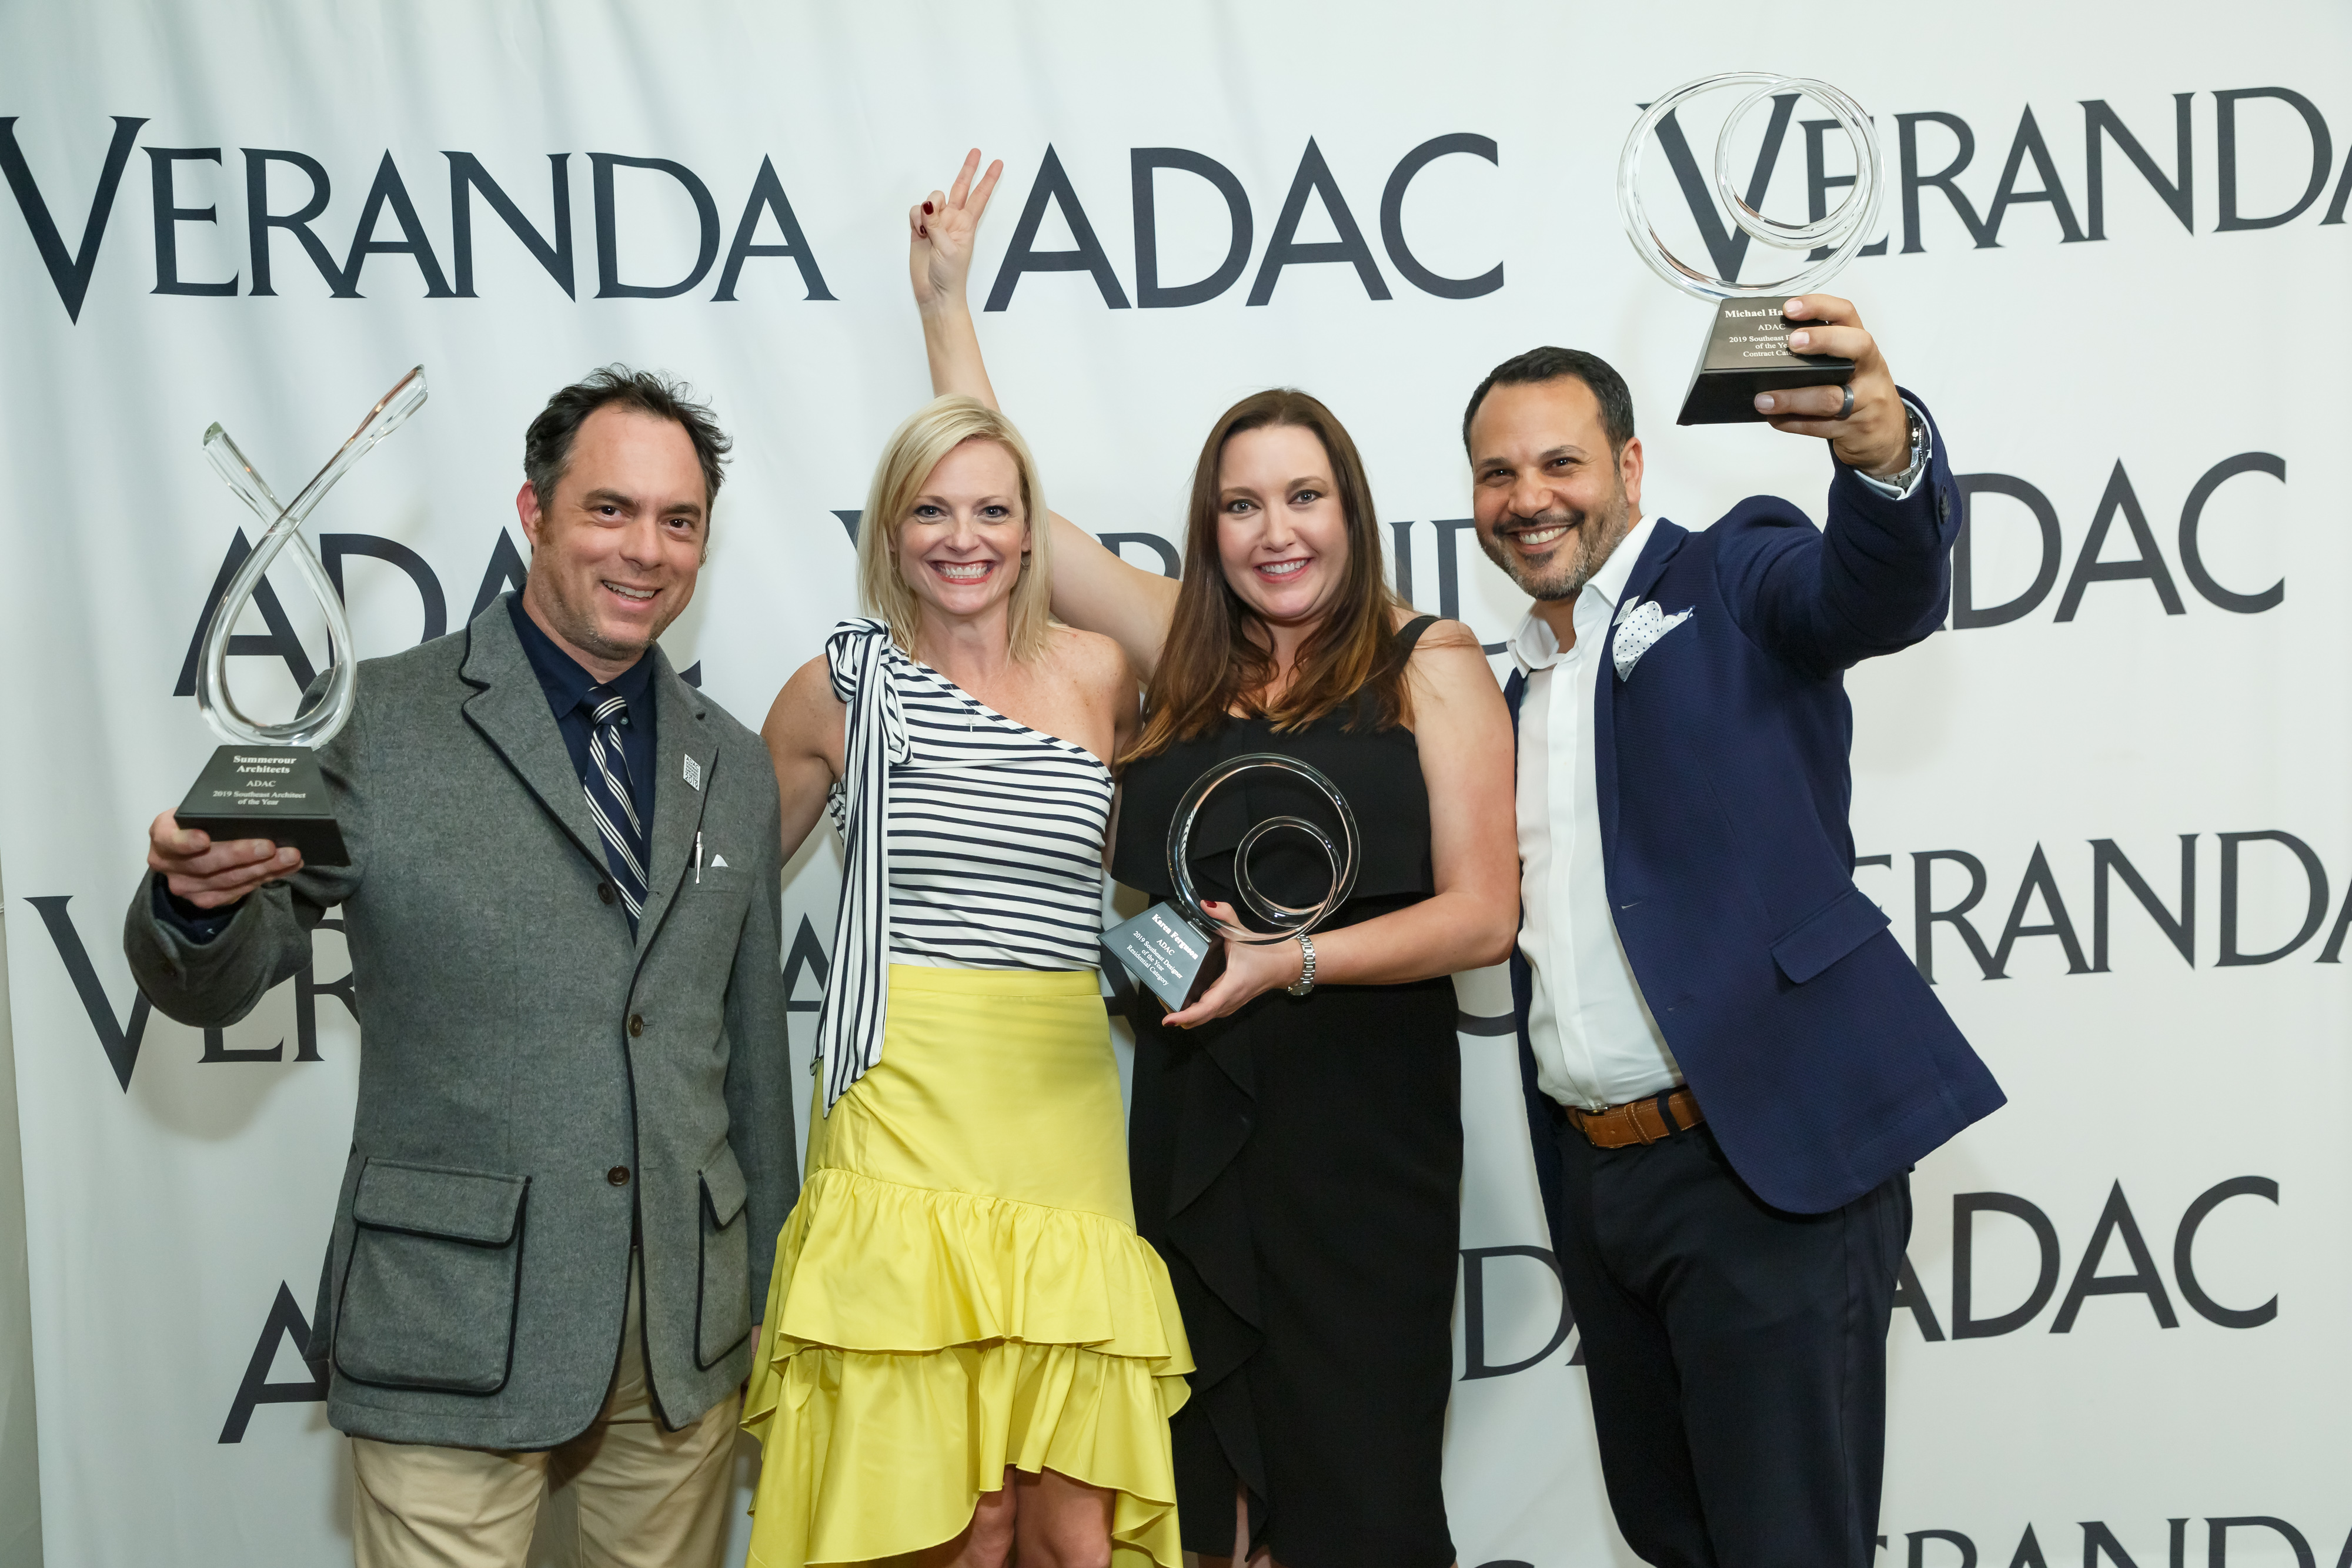 Katie Miner (second from left) with Southeast Designers & Architect of the Year award winners DJ Betsill, Karen Ferguson and Michael Habachy